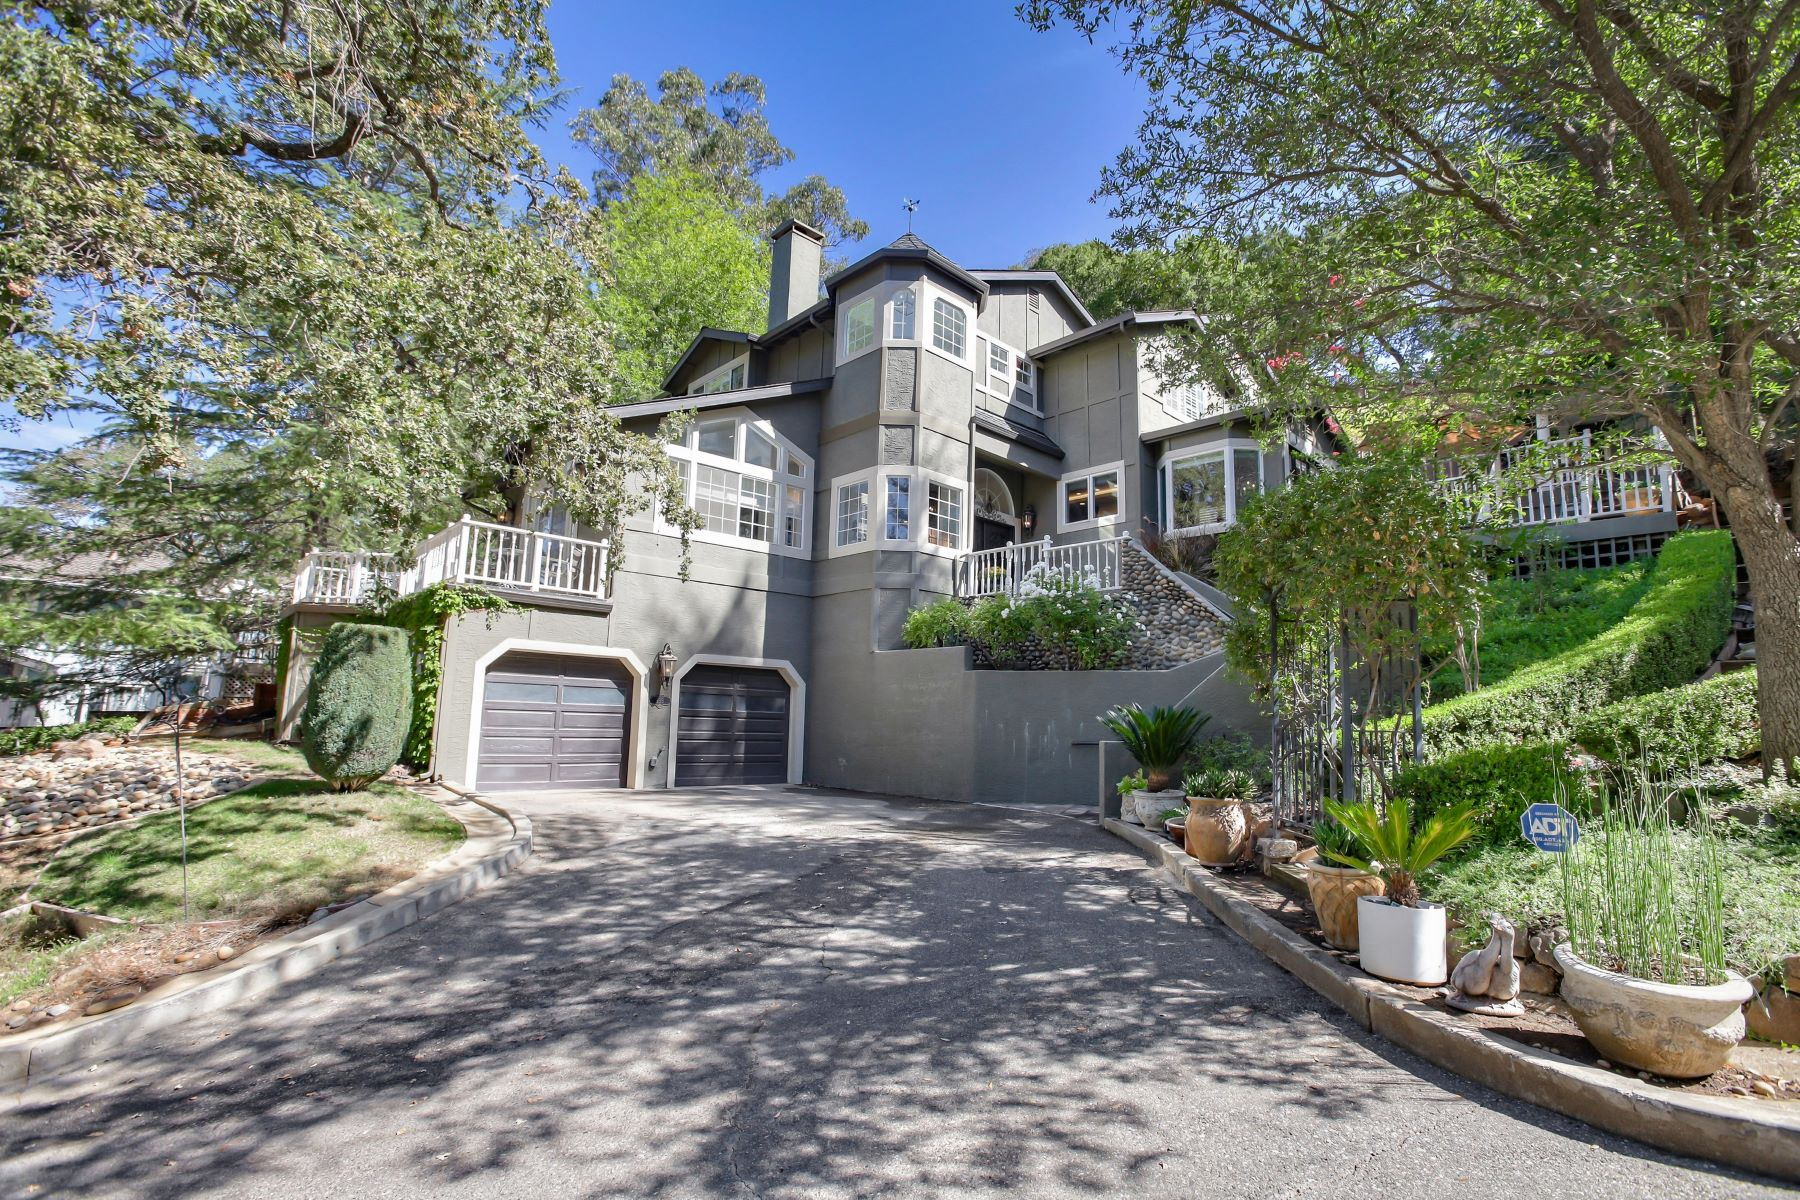 Single Family Homes for Active at Stunning Los Gatos Downtown Home! 155 College Avenue Los Gatos, California 95030 United States